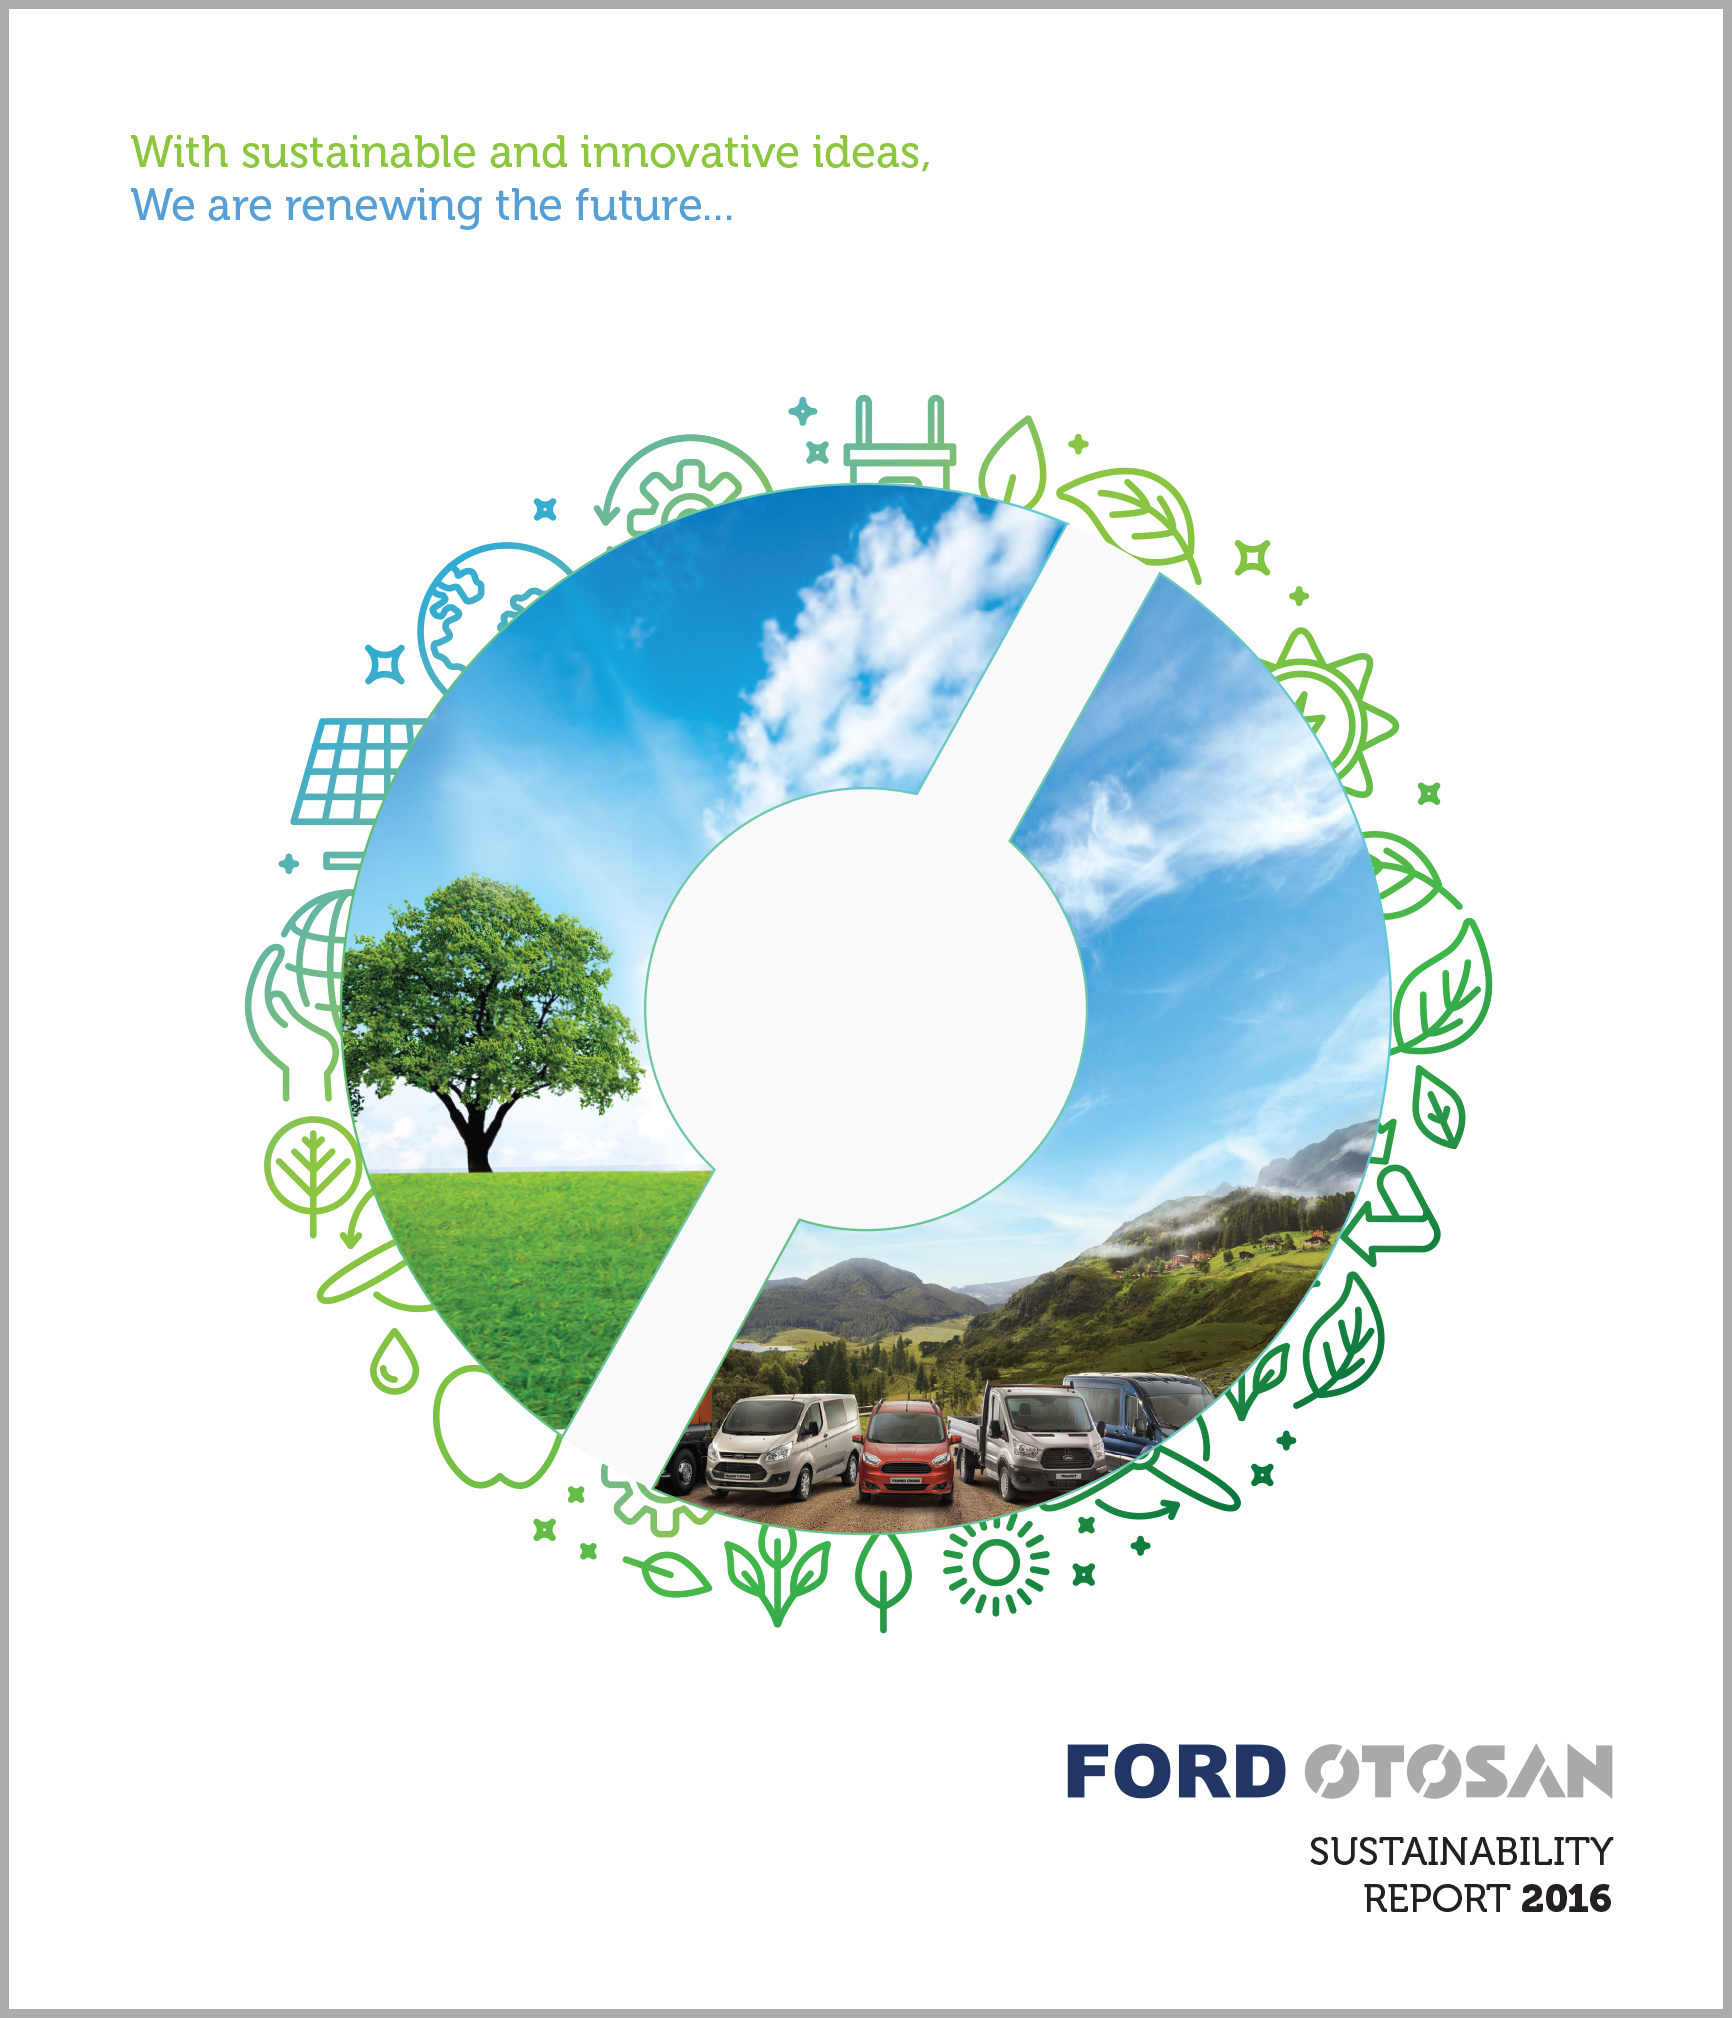 Sustainability Reports  Ford Otosan